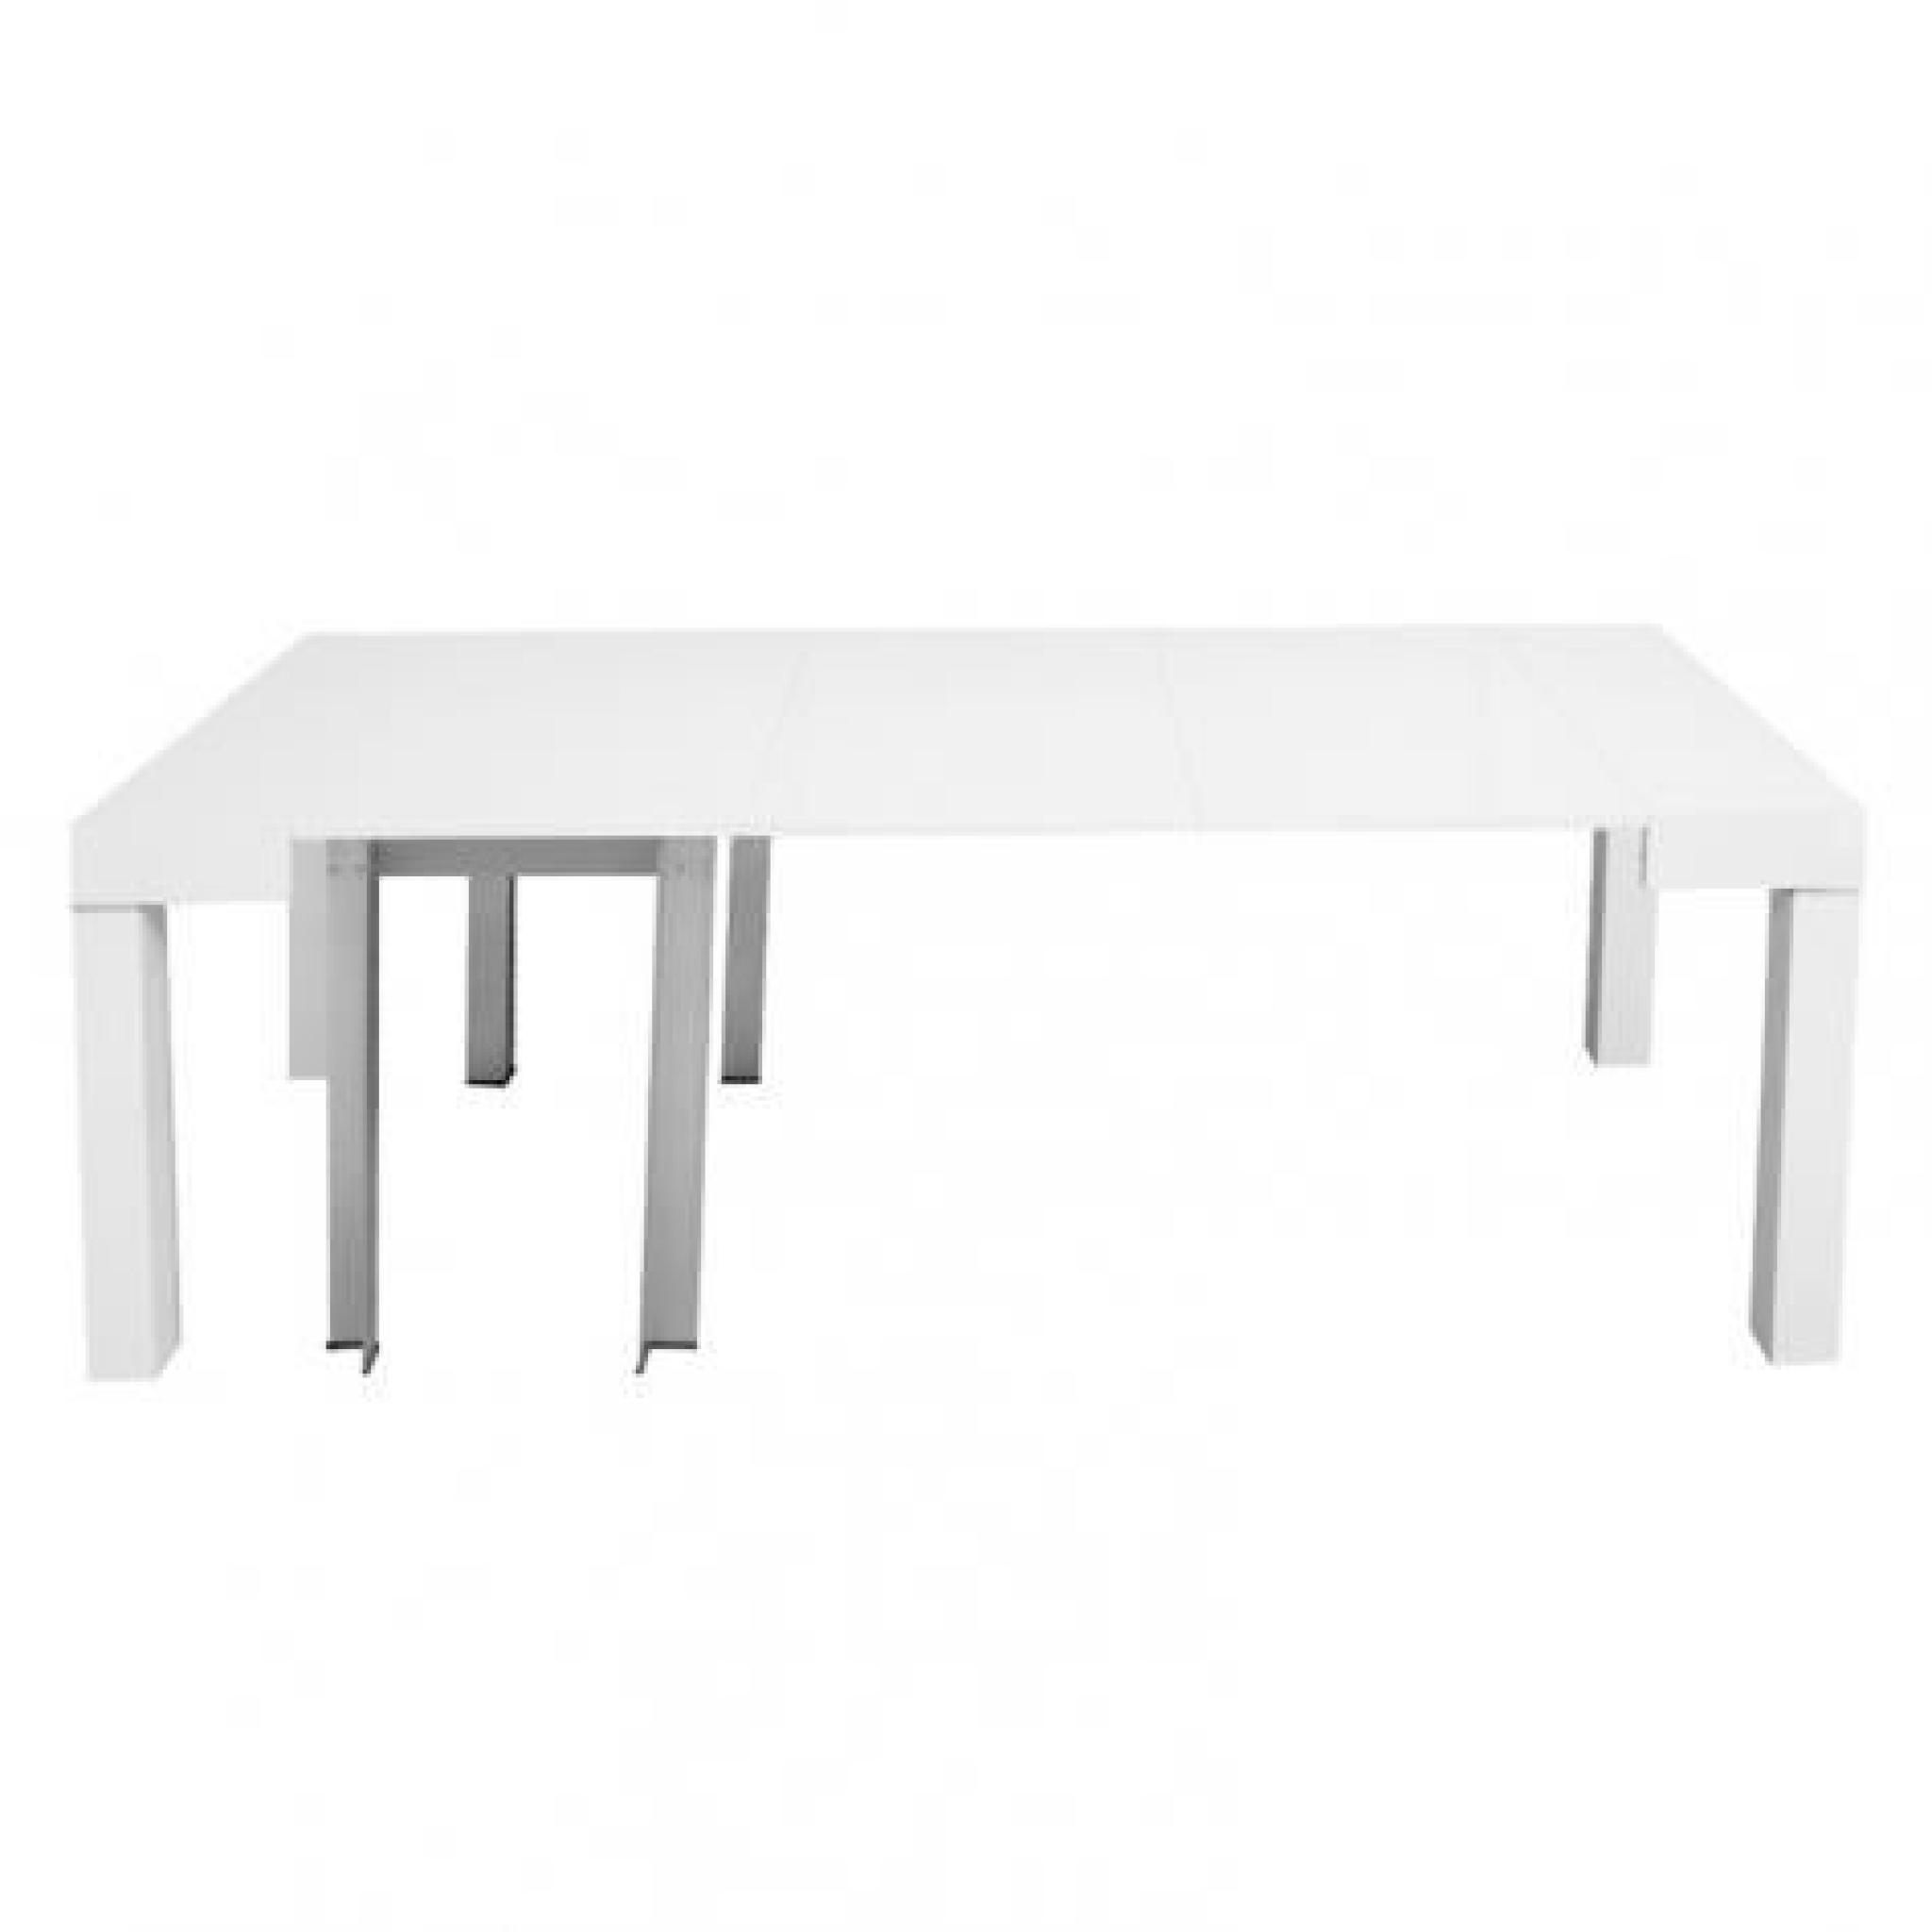 Table laquee blanche extensible 28 images table for Table blanche extensible